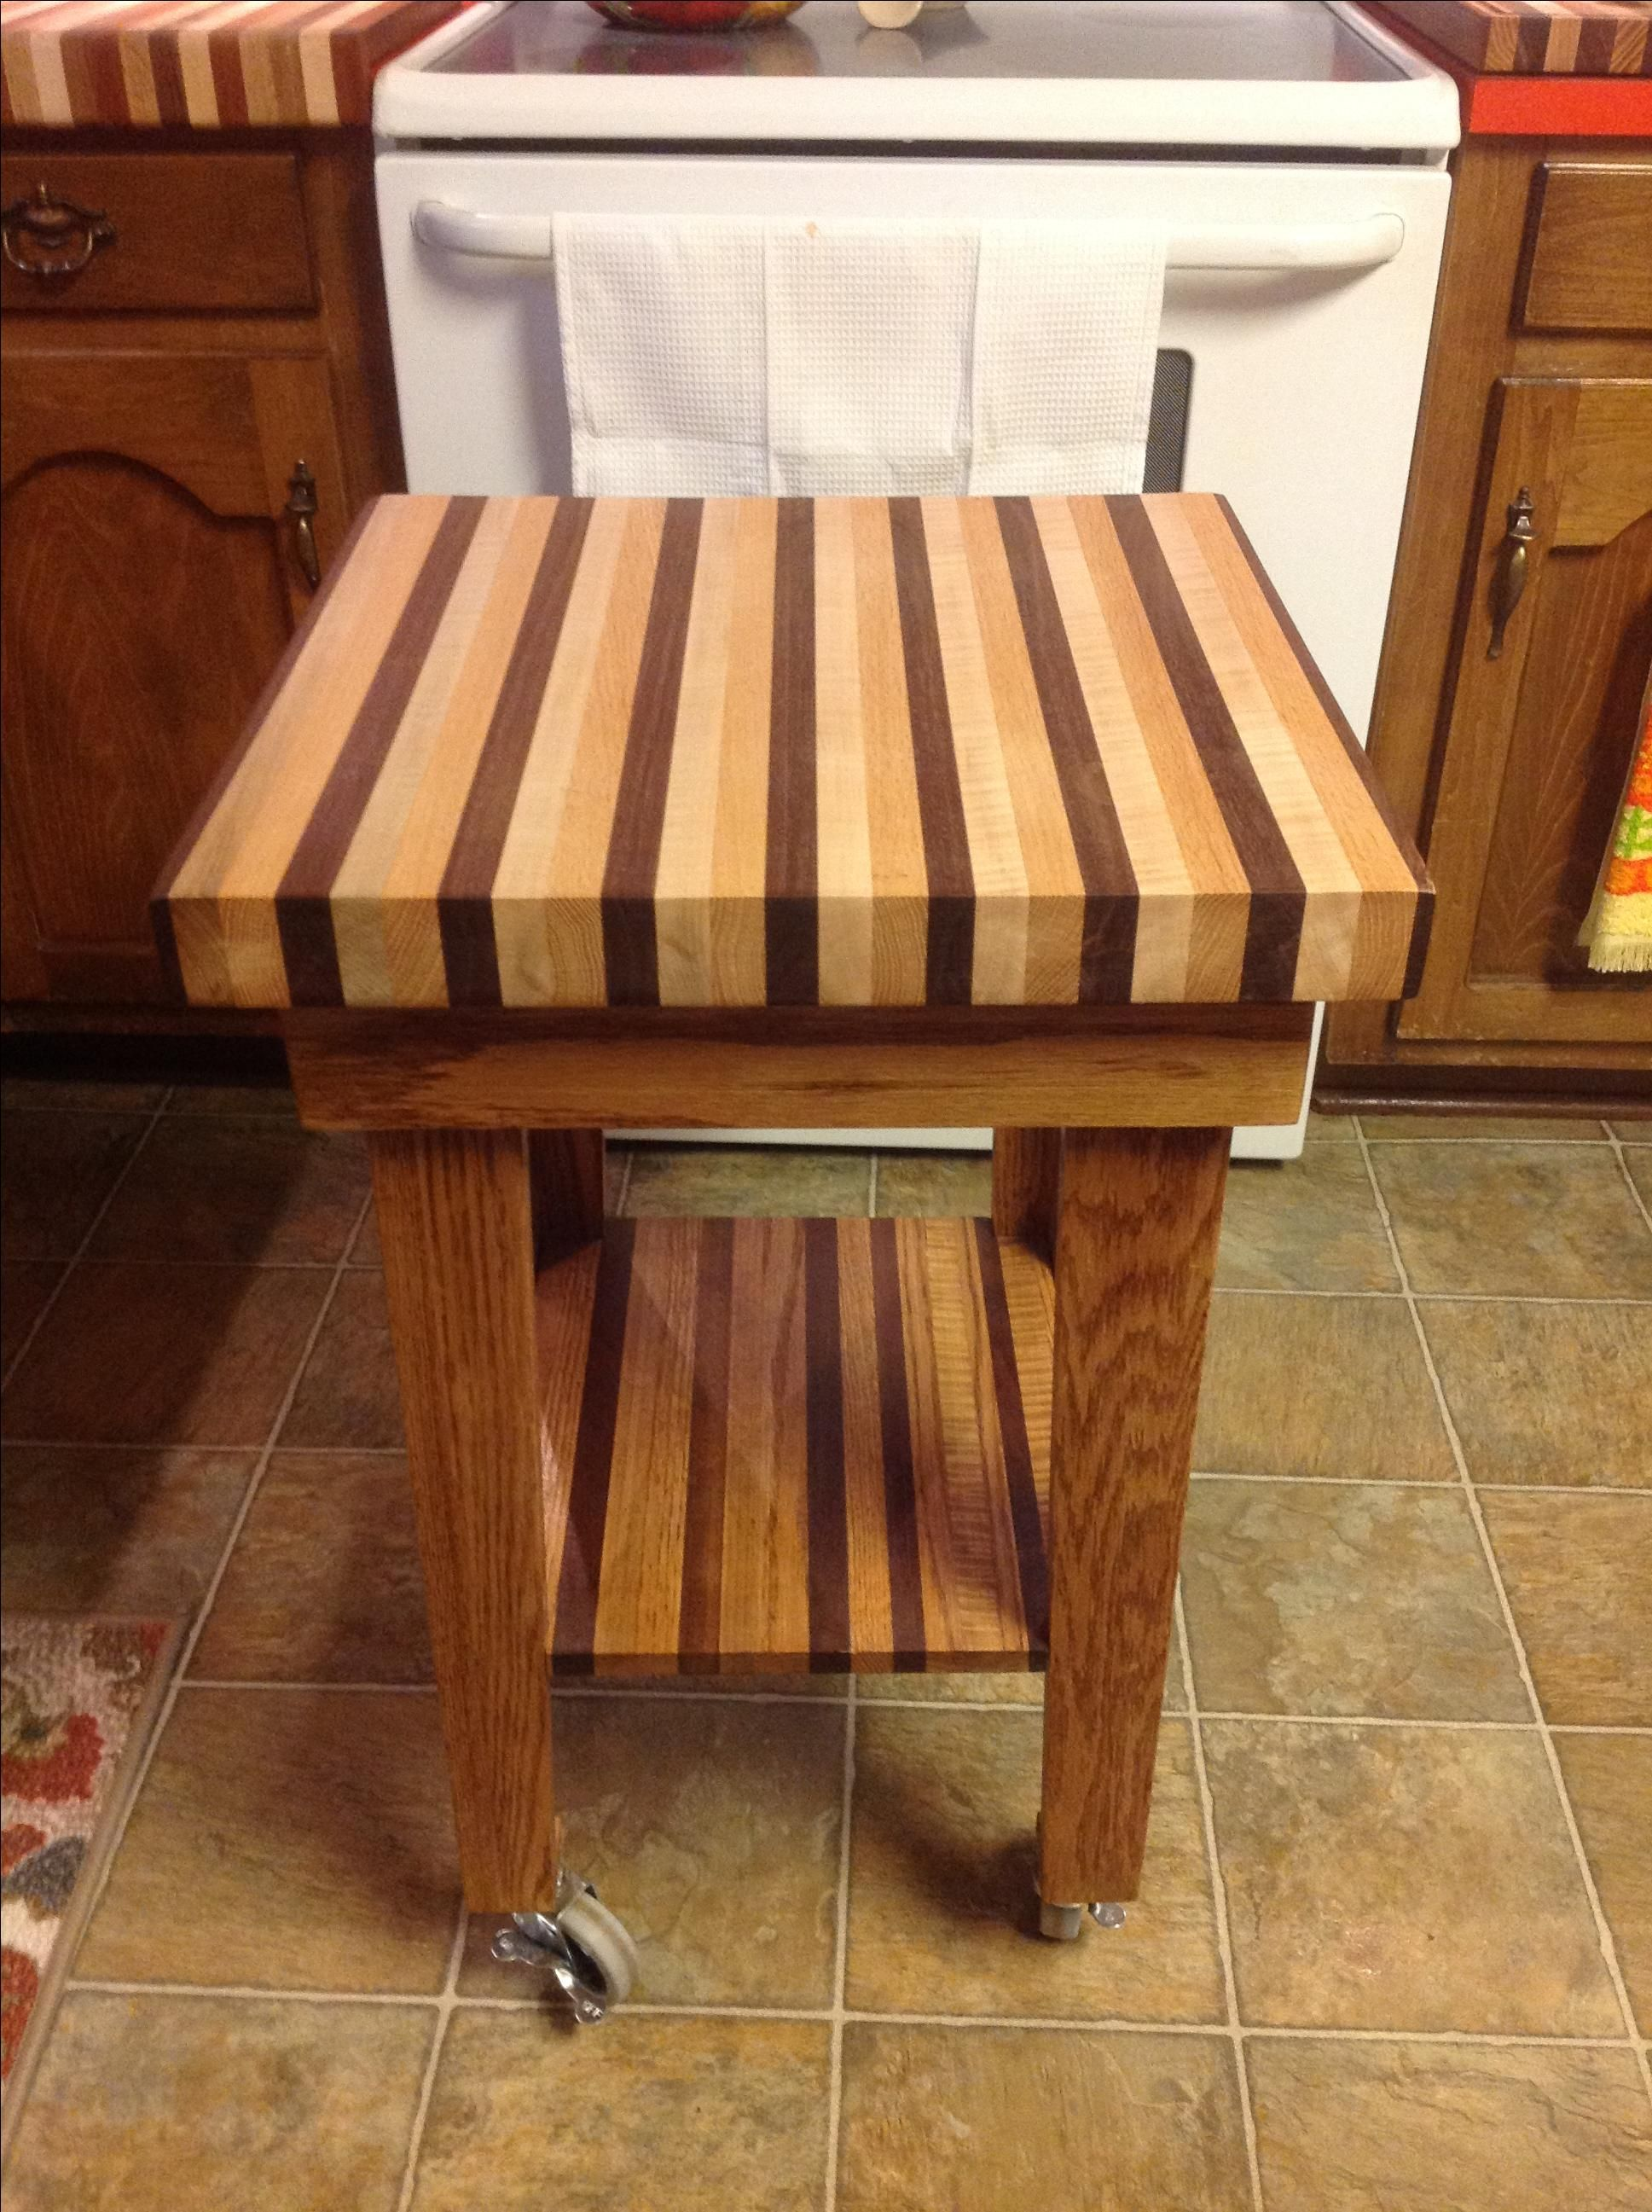 Custom Made Roll Around Cutting Board by Dale Greene Wood